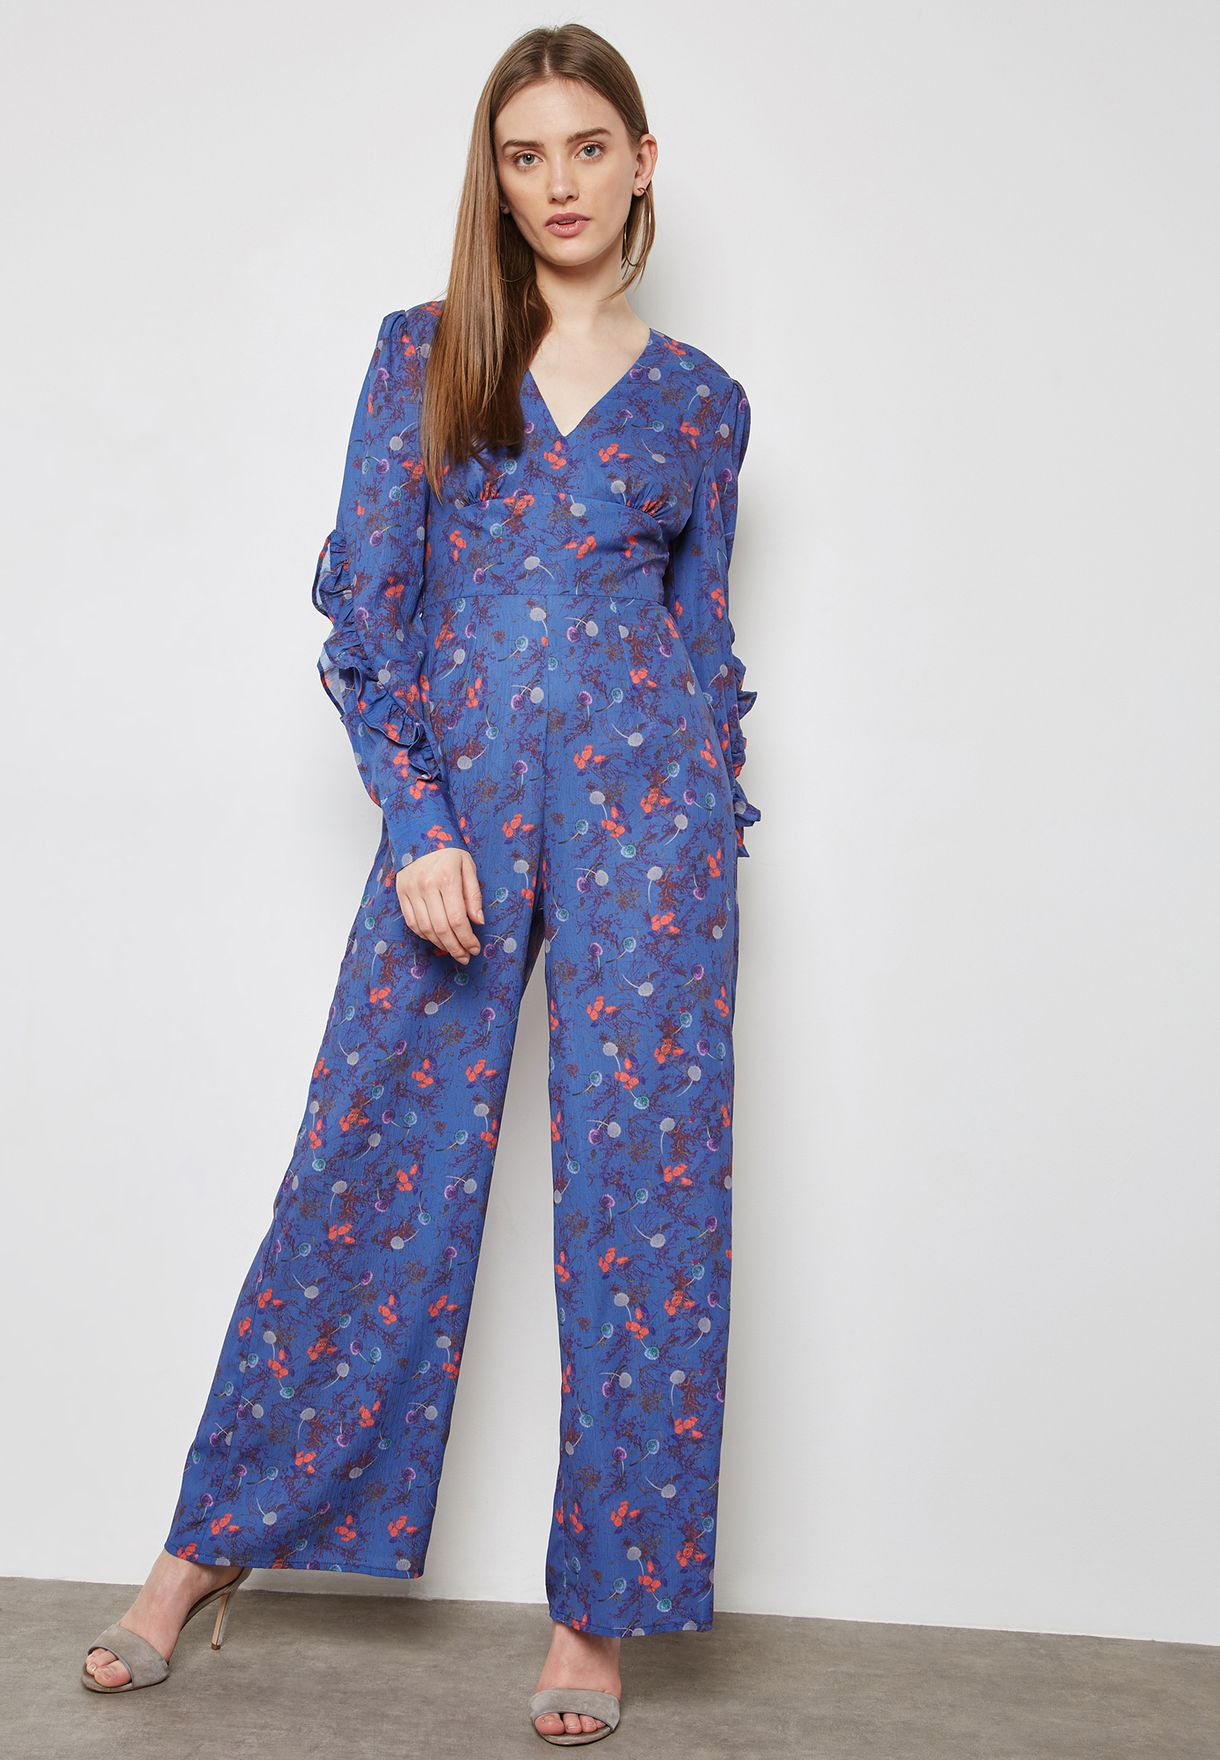 52fe2b0fa6fd Shop Lost Ink prints Printed Jumpsuit 1001115150590040 for Women in Bahrain  - LO956AT94LYB